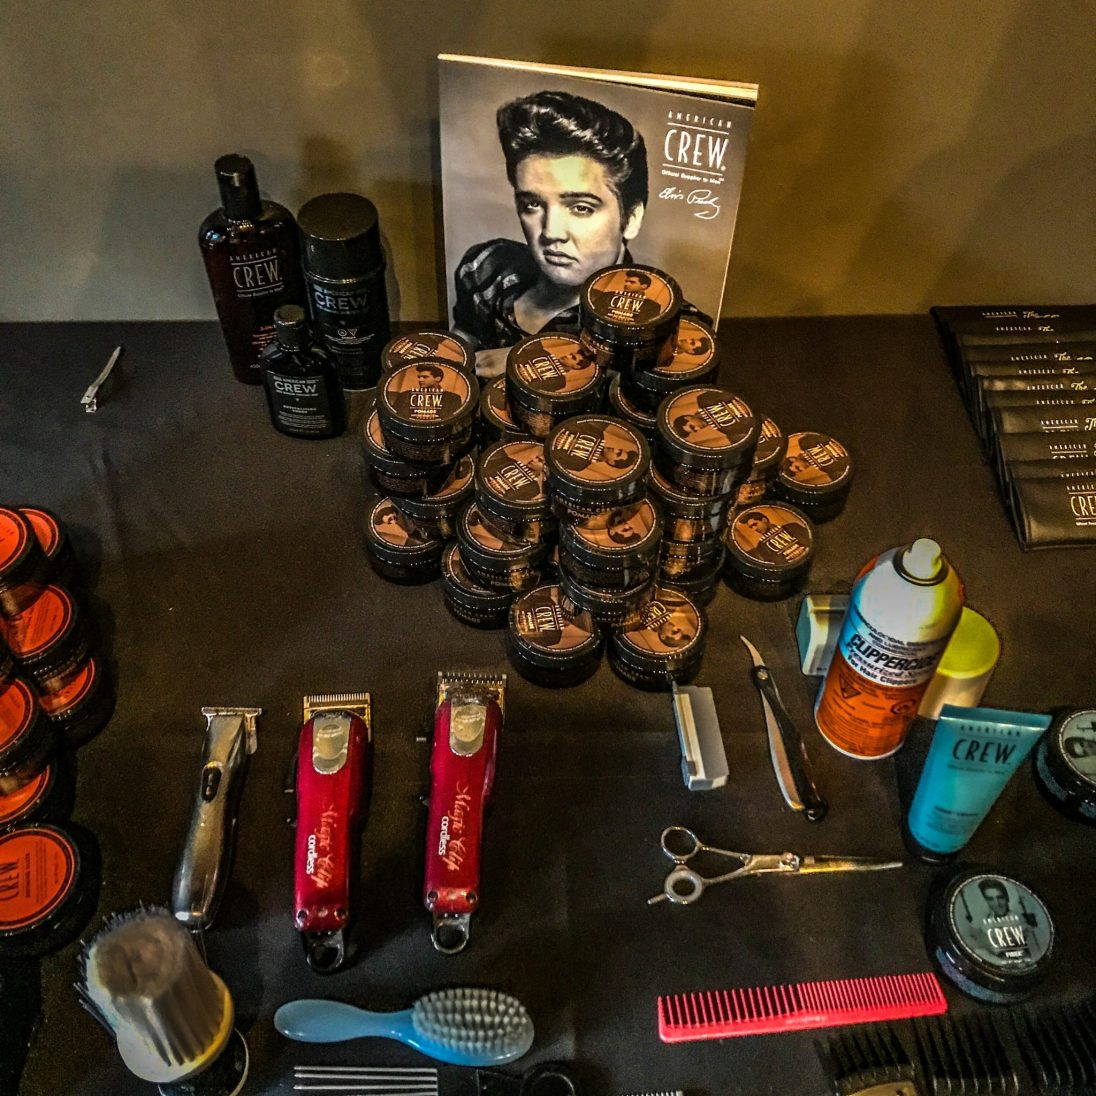 Hairstyling and Products courtesy of American Crew